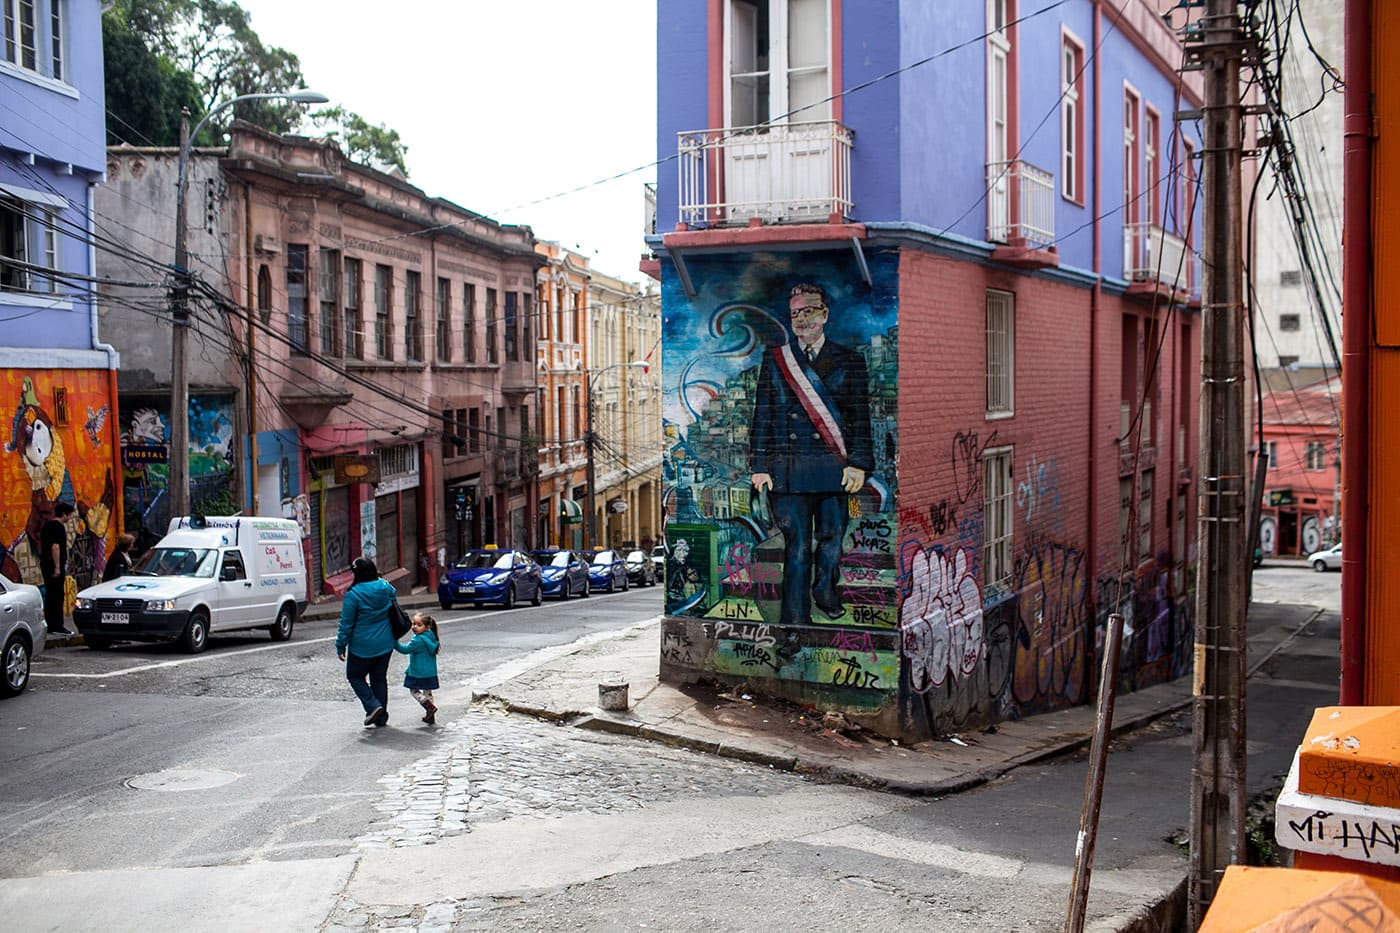 Street Art in Valparaiso, Chile